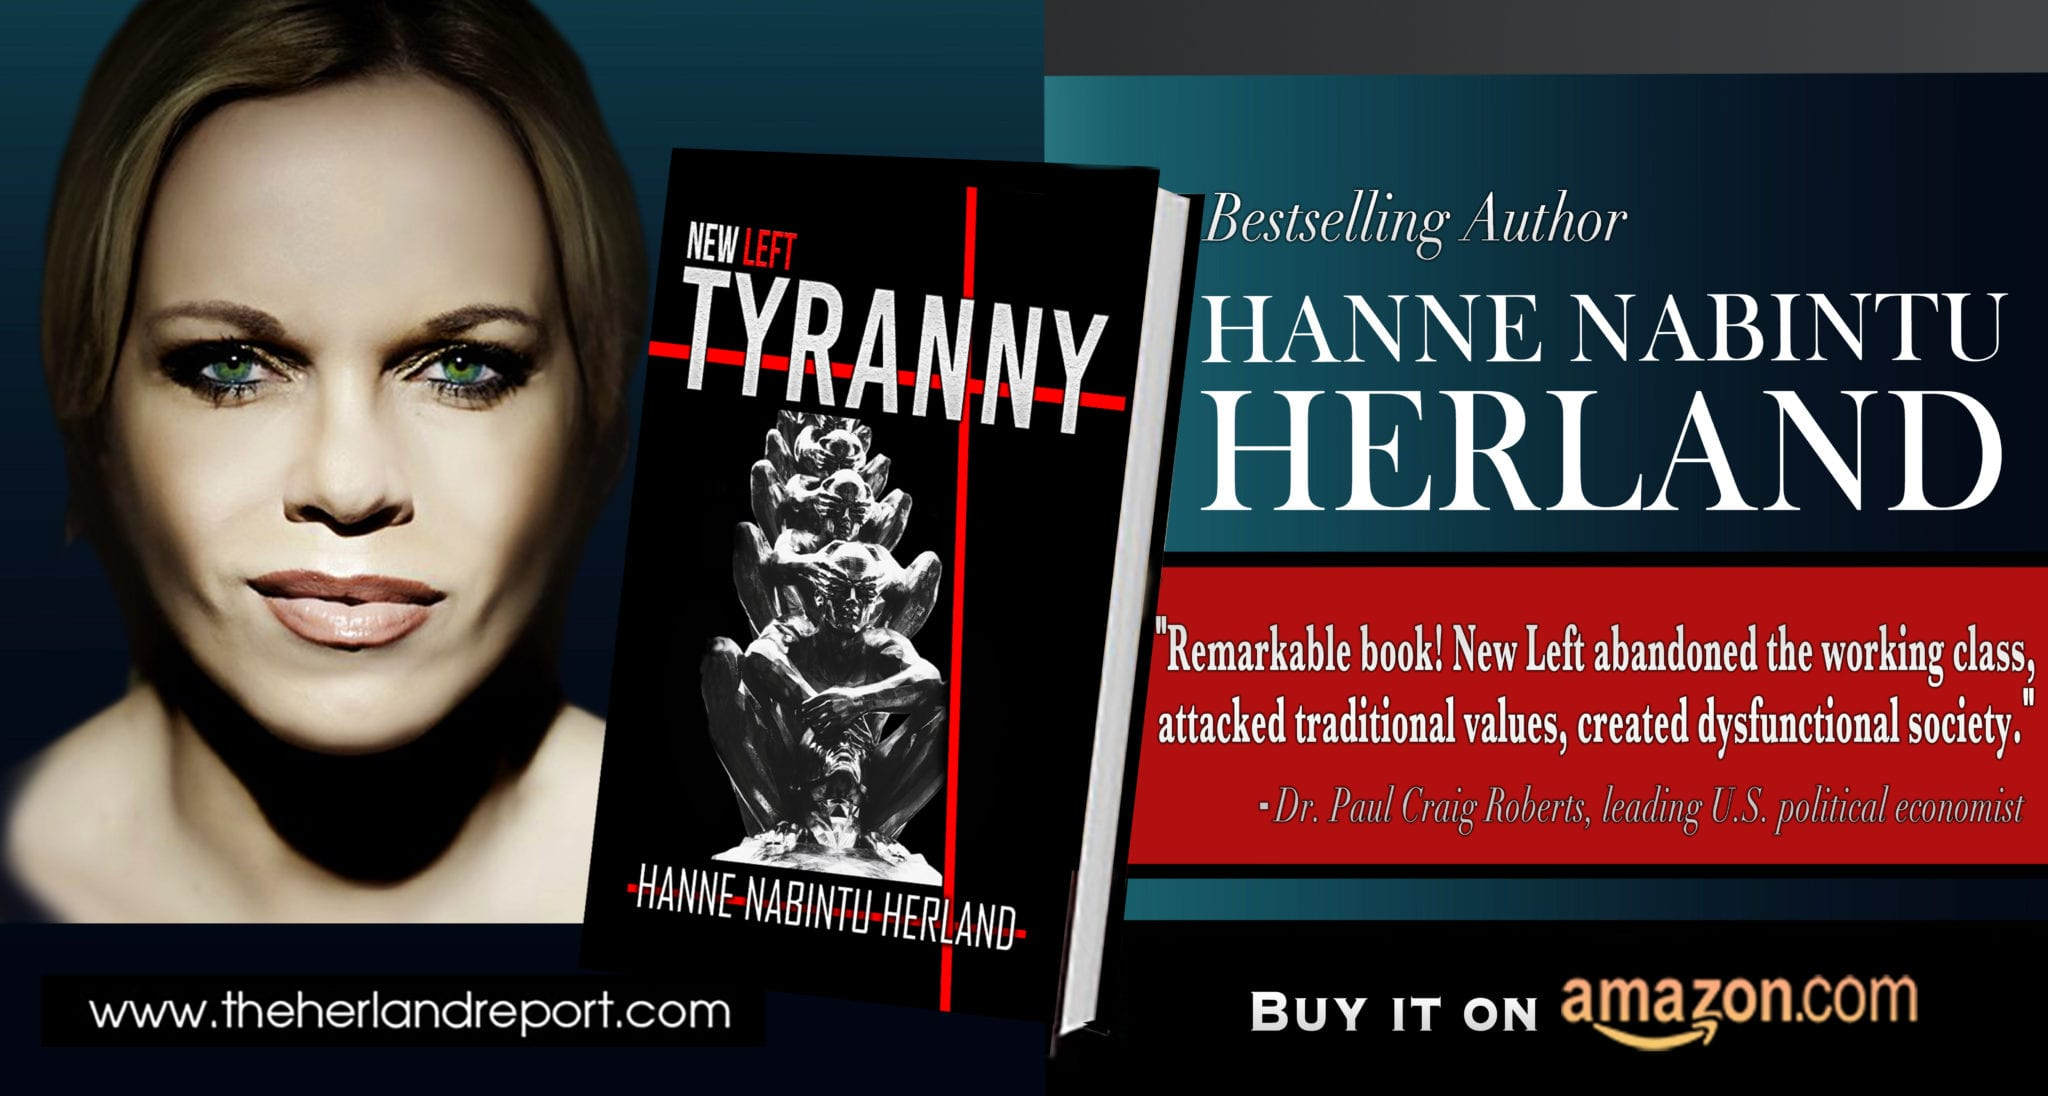 New book about Gangster State Capitalism and Returning Feudalism: New Left Tyranny, by bestselling author Hanne Nabintu Herland